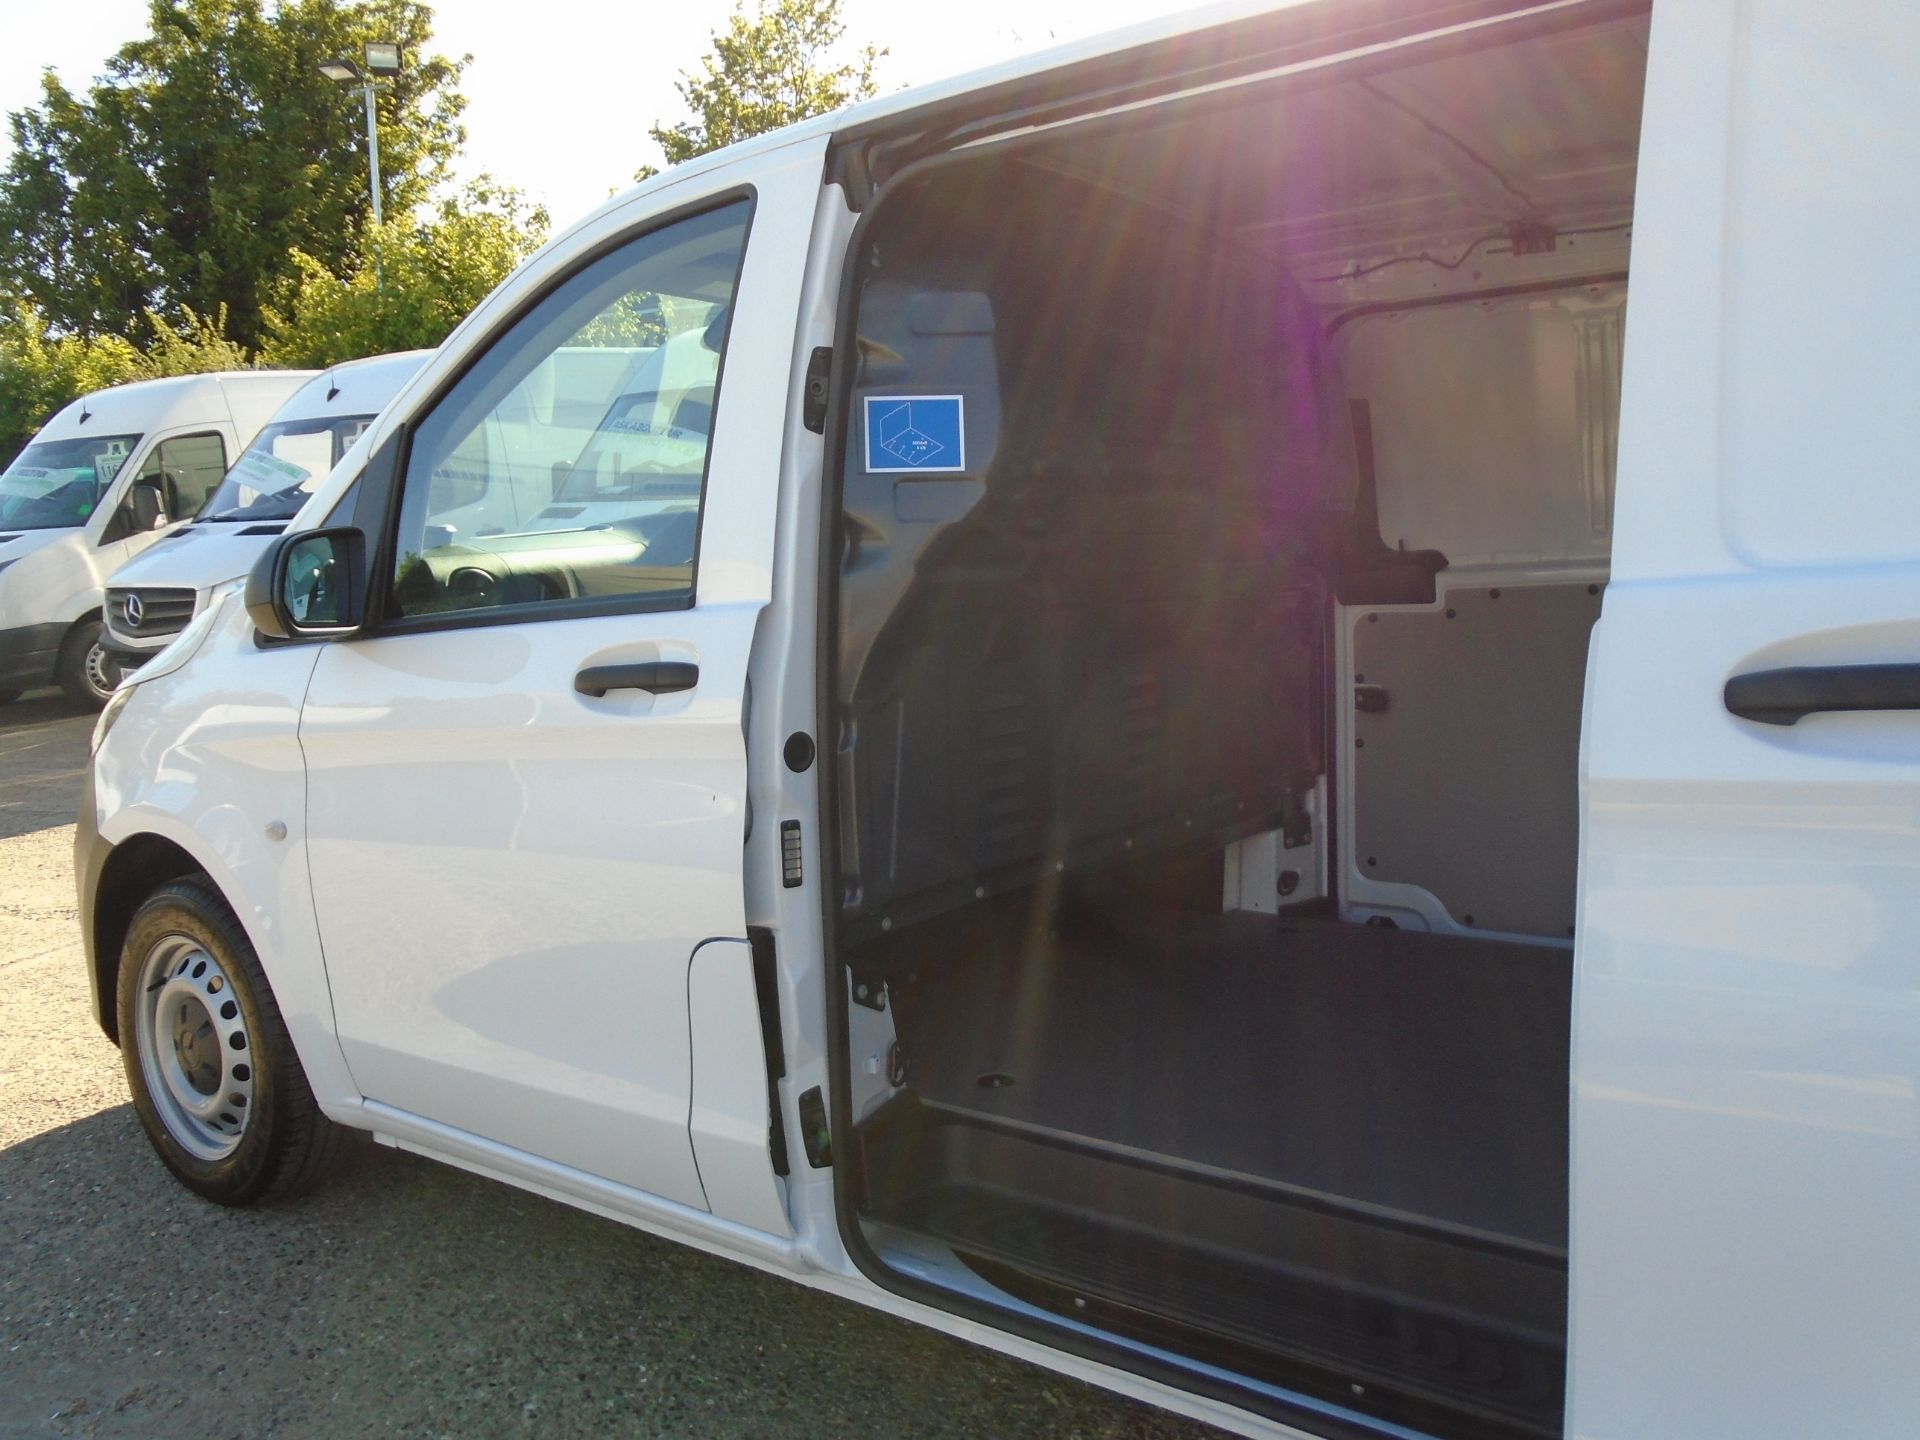 2019 Mercedes-Benz Vito  111Cdi Van Euro 6 Massive specification A/C Air Con, Delivery Miles Only (YN19ZFR) Image 9